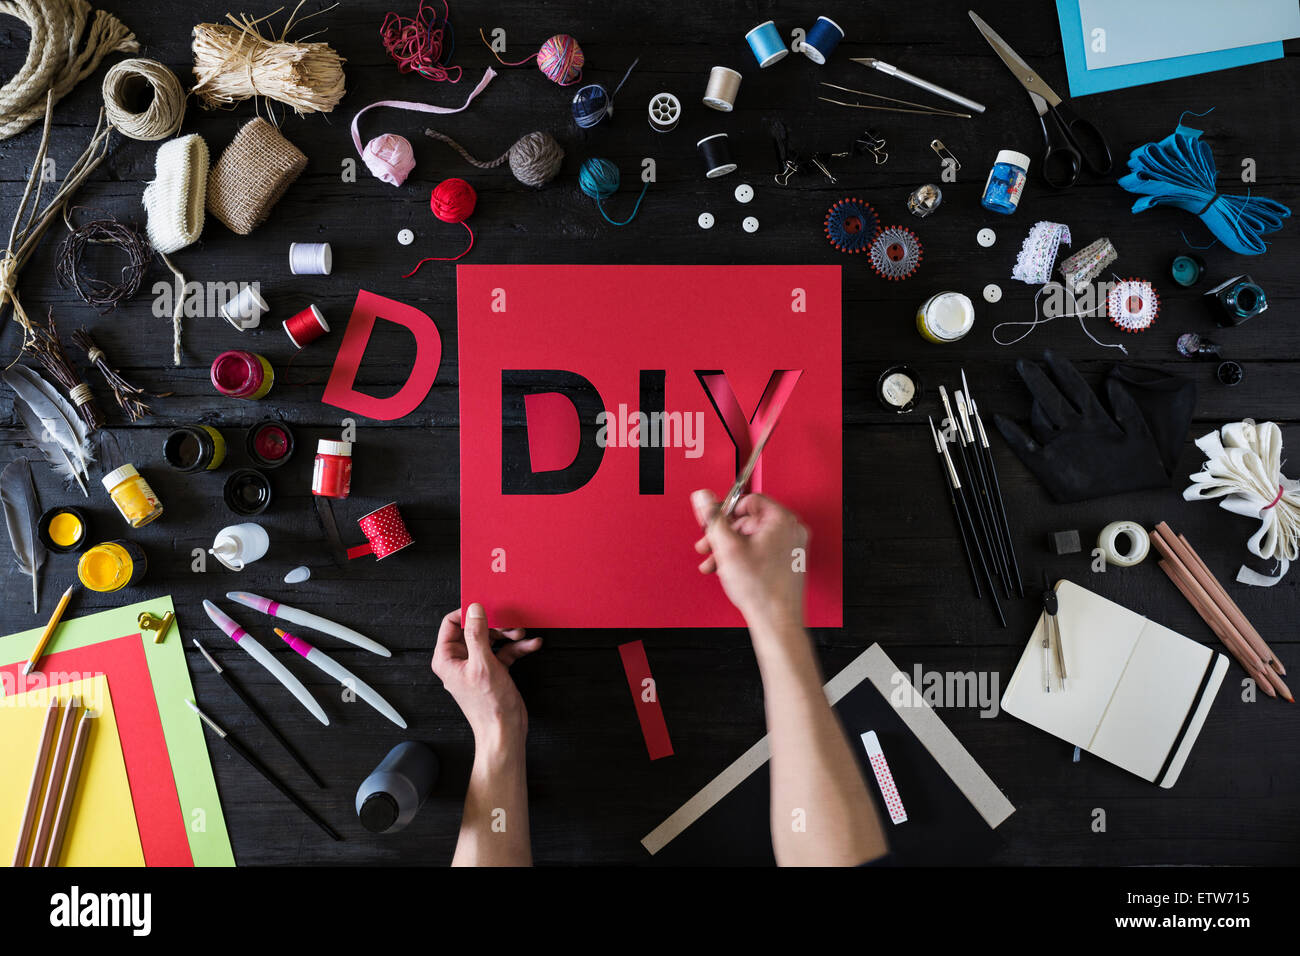 Man's hands cutting out the word DIY of red cardboard - Stock Image